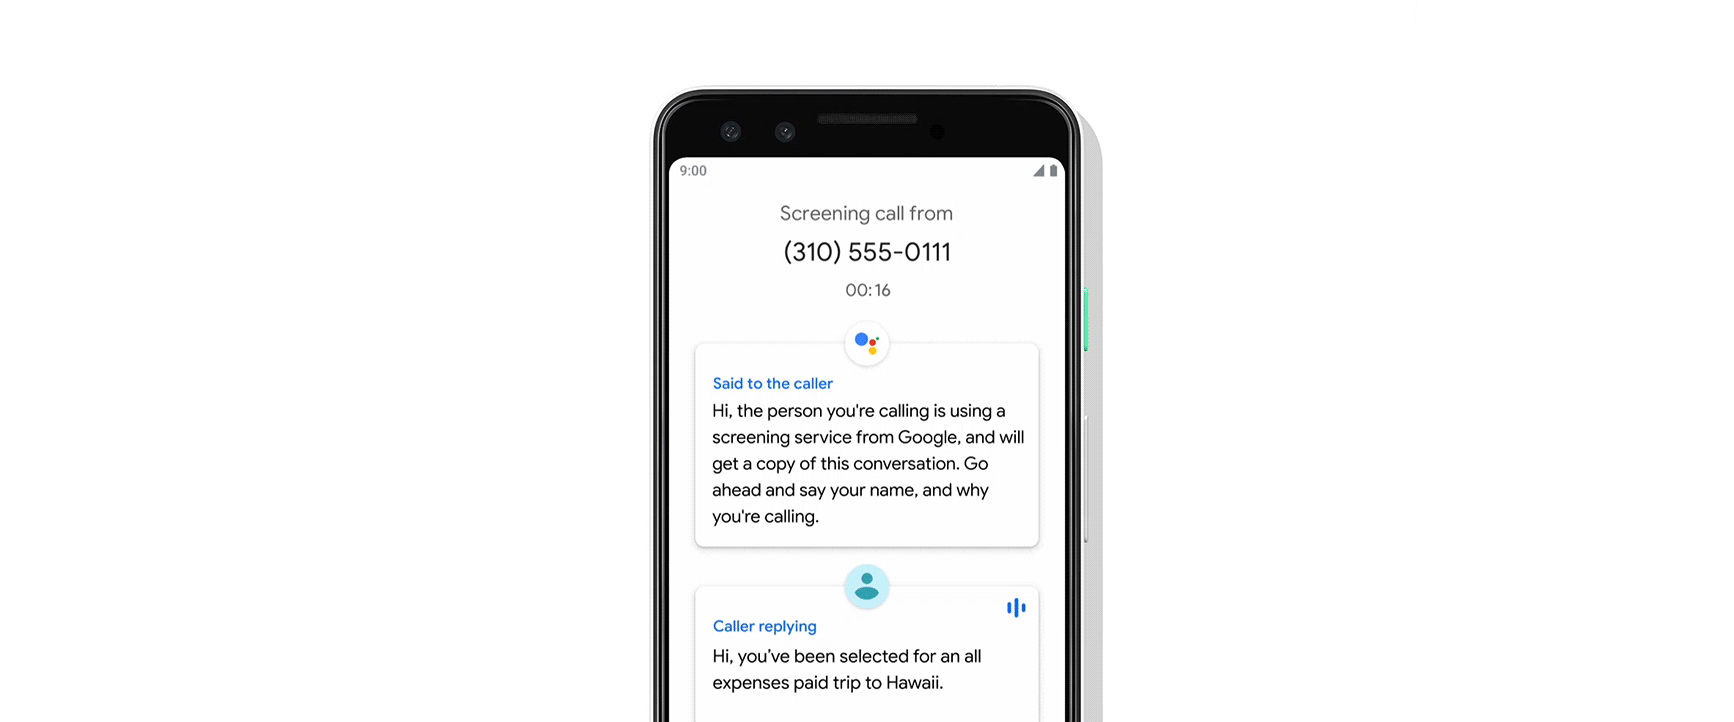 Why spam calls are more common, and how Pixel's Call Screen helps